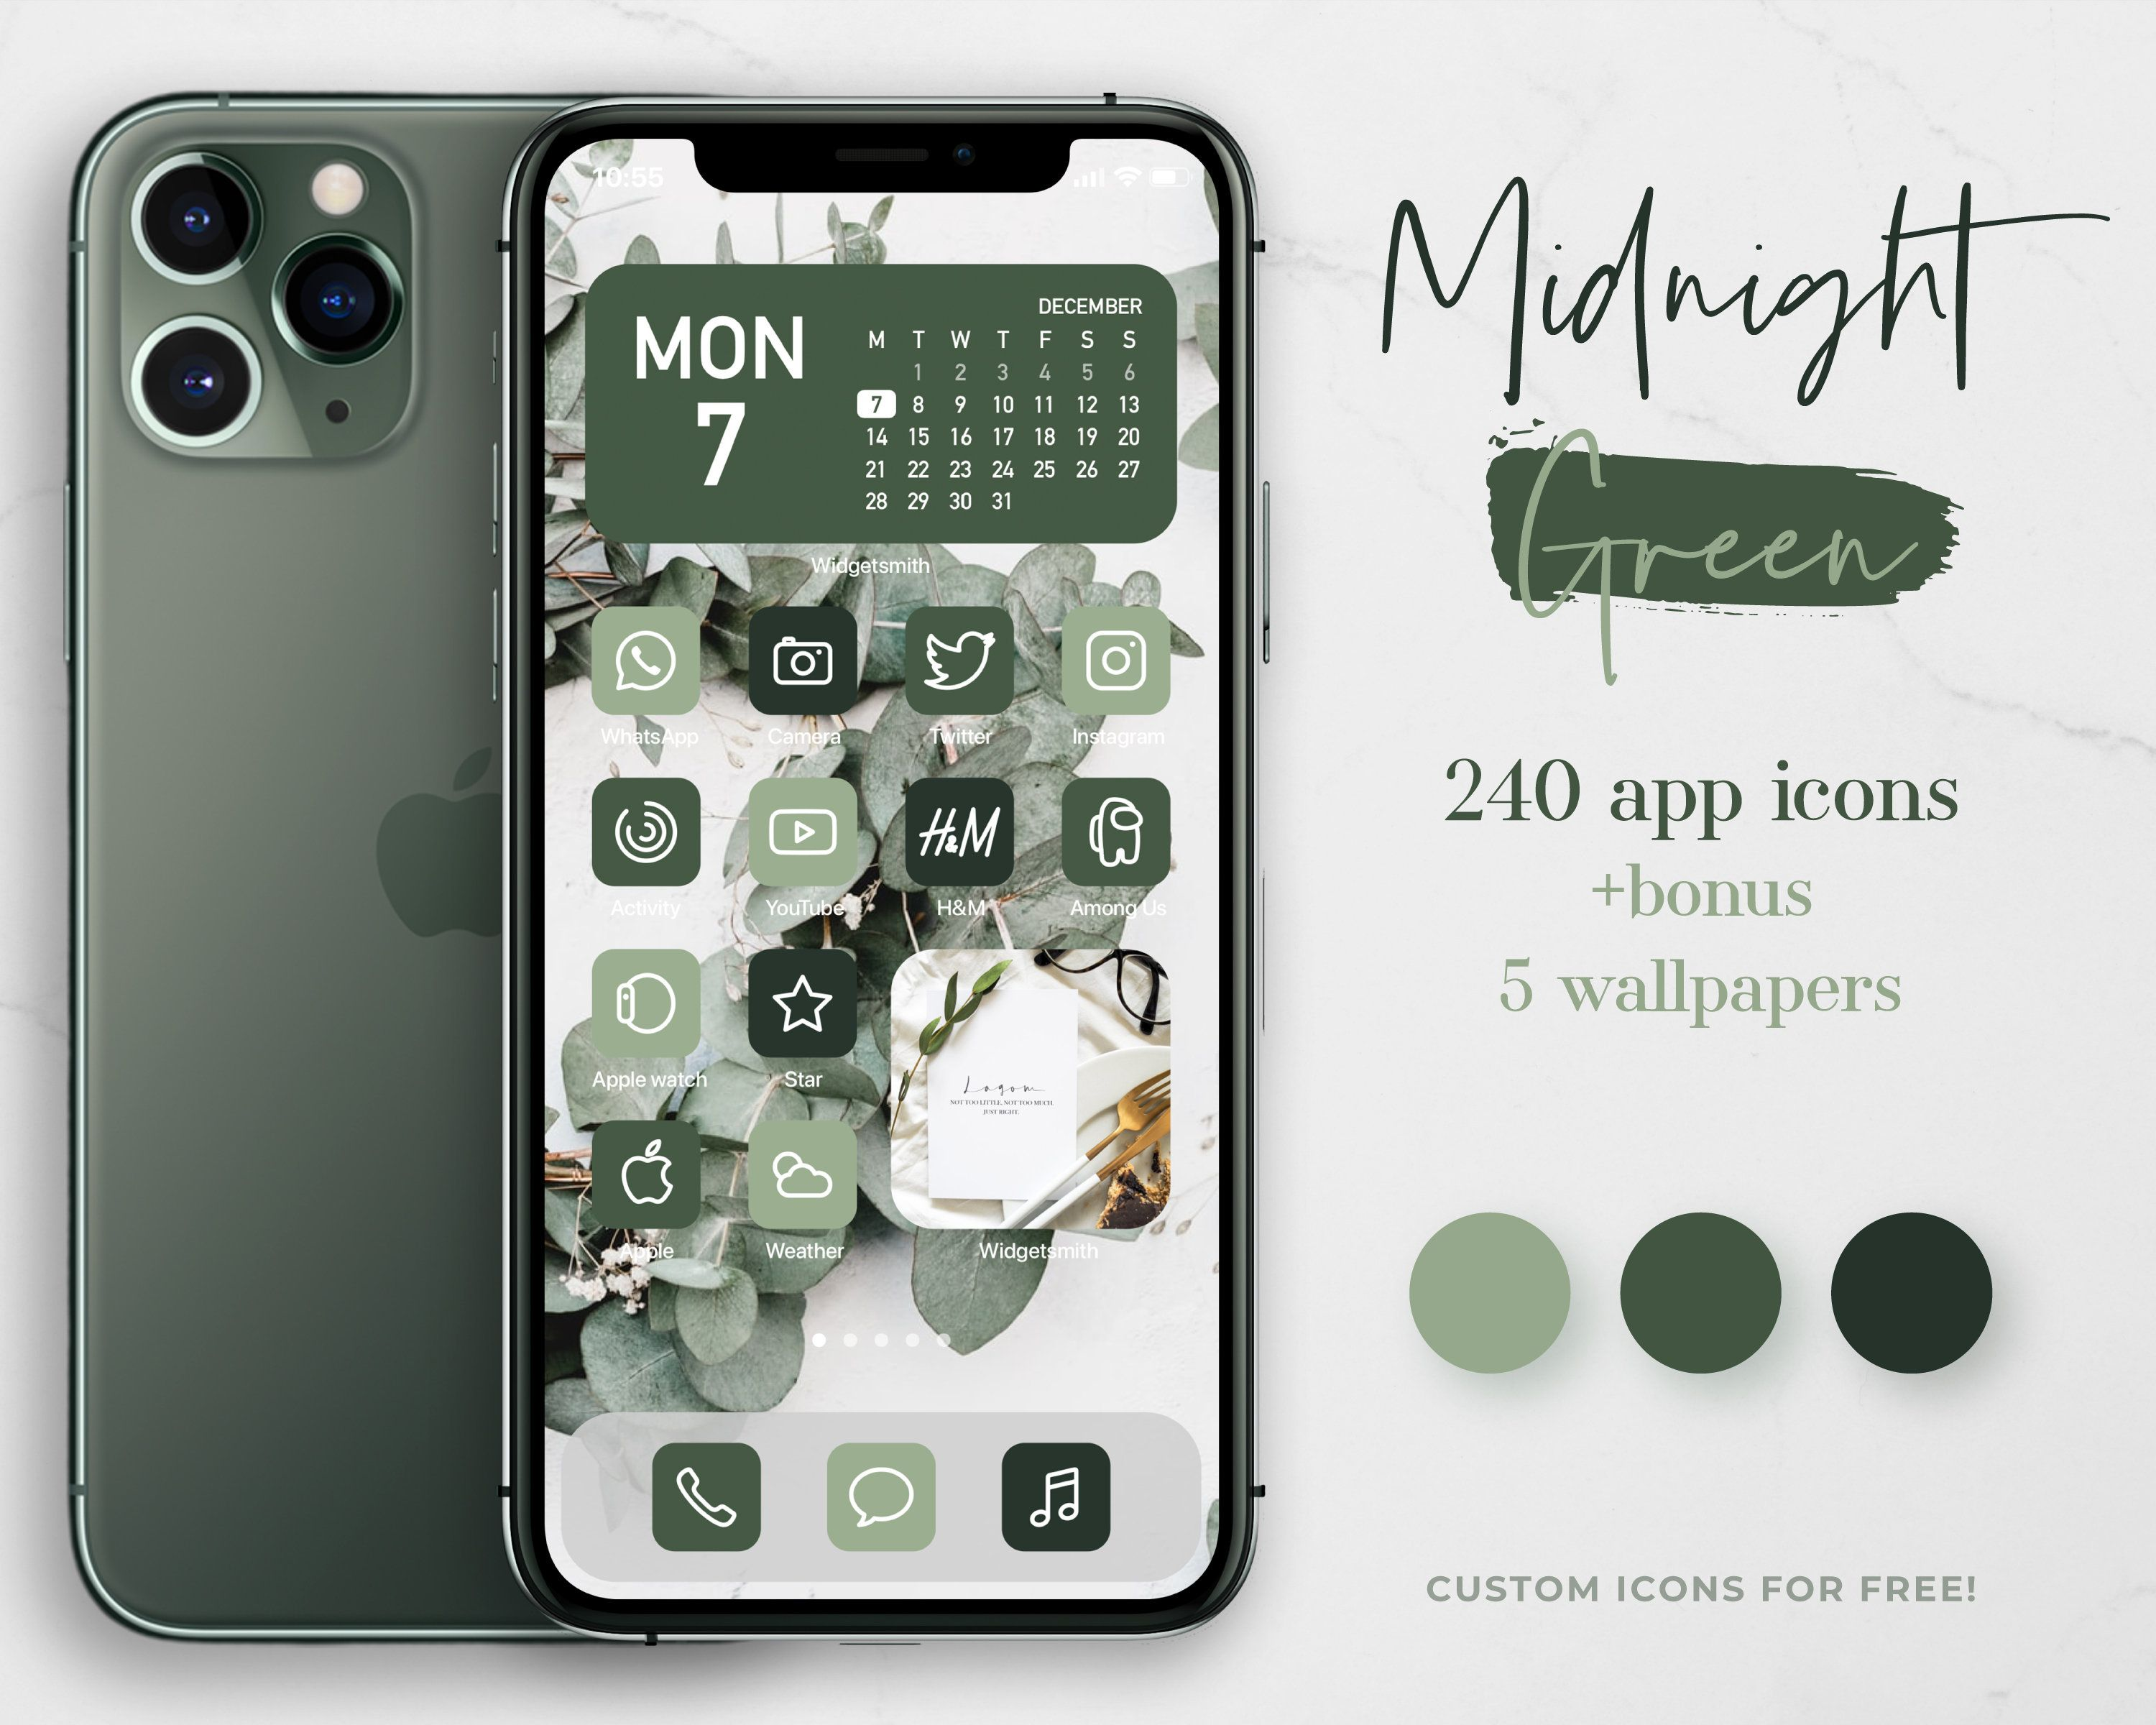 Midnight Green App Icons For Ios 14 80 App Covers In 3 Green Etsy App Icon App Covers Phone Themes Home screen midnight green iphone 11